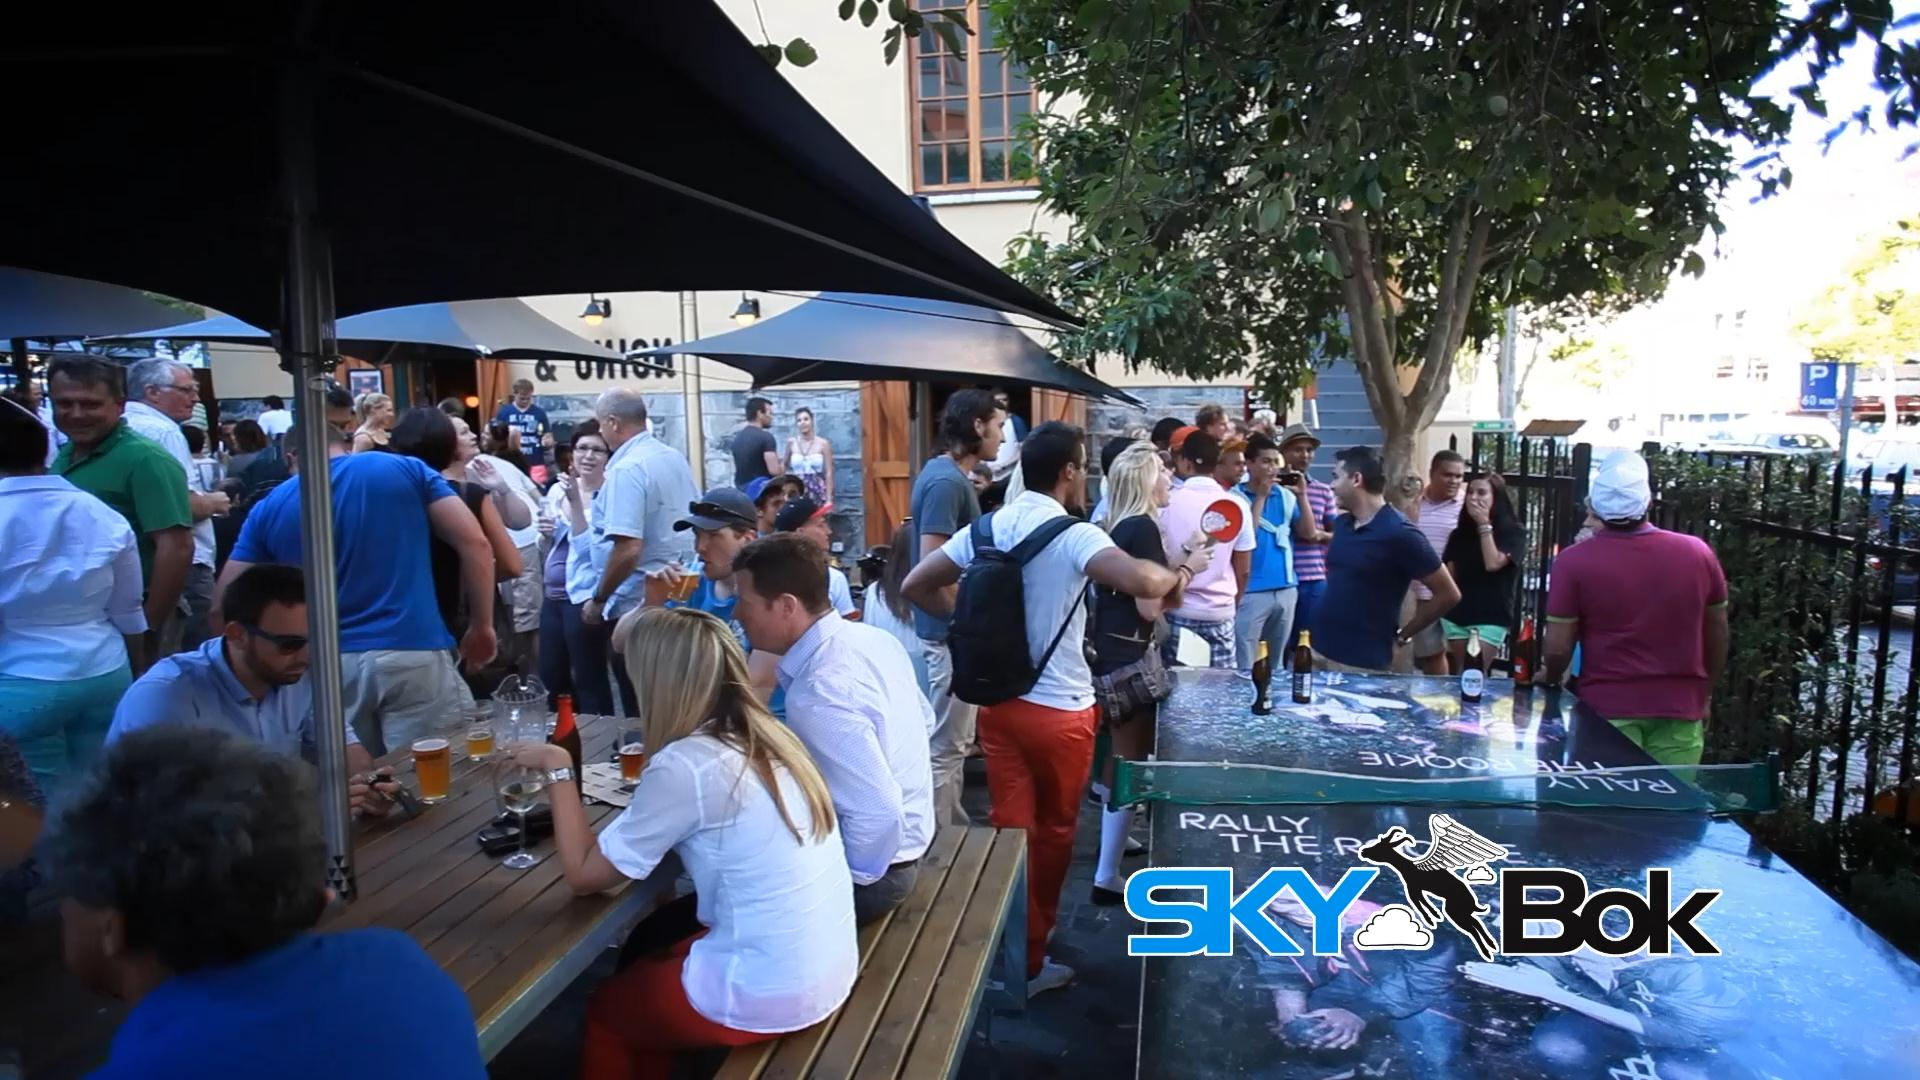 &Union Cape Town Skybok Video Profiling South Africa